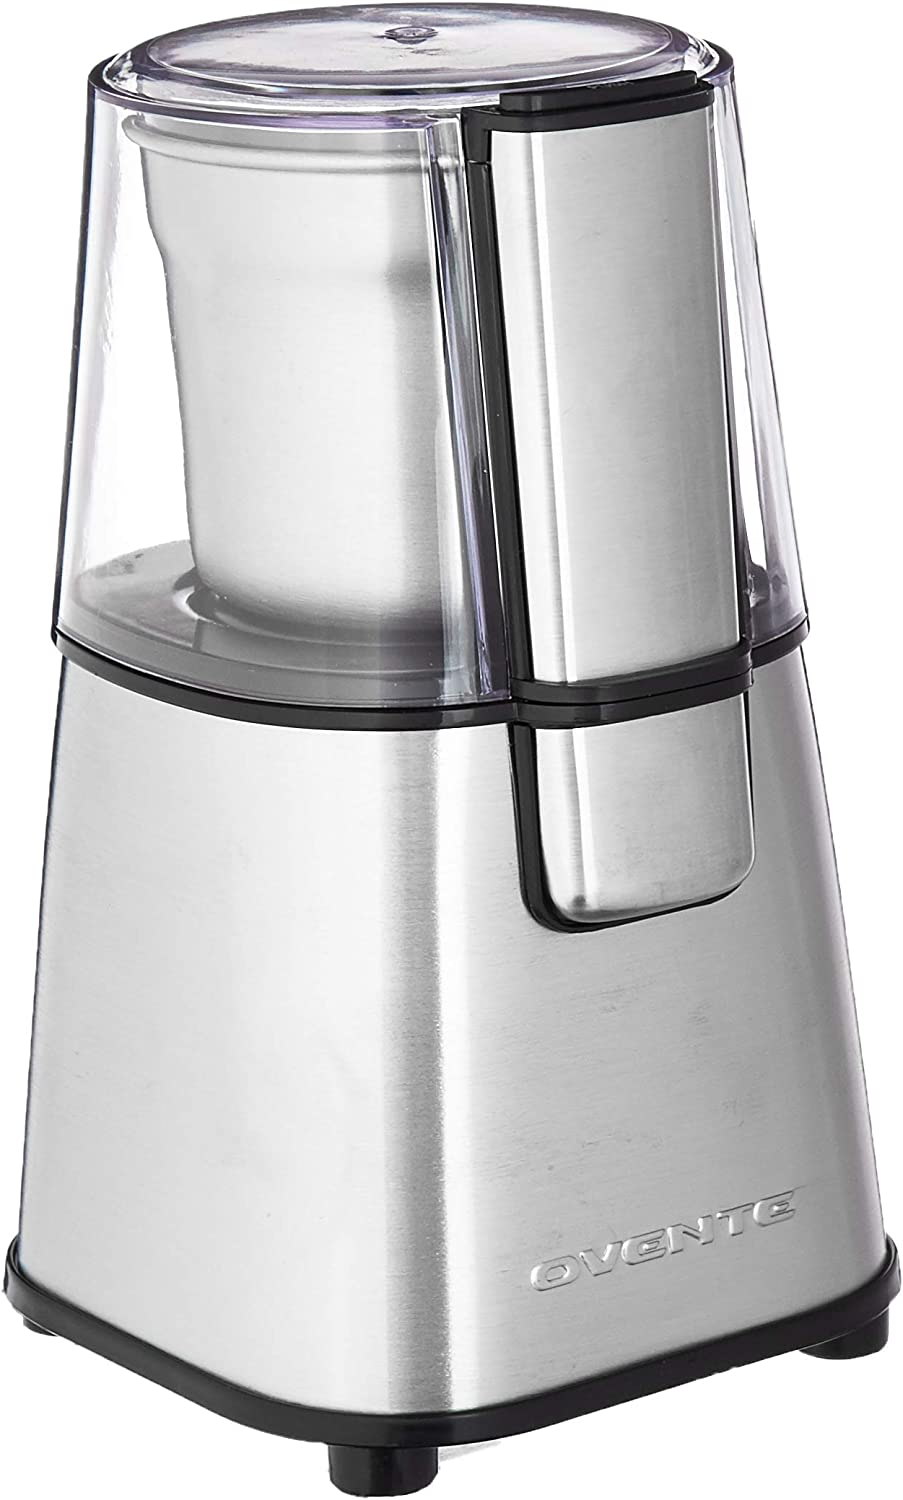 Ovente Electric Coffee Grinder 2.1 Ounces with Removable 2-Blade Grinding Bowl, 200 Watts Powerful Motor, Fast Grinding, Perfect for Multi Purpose Uses, Beans, Spices, Grains, Nuts, and More (CG620S)